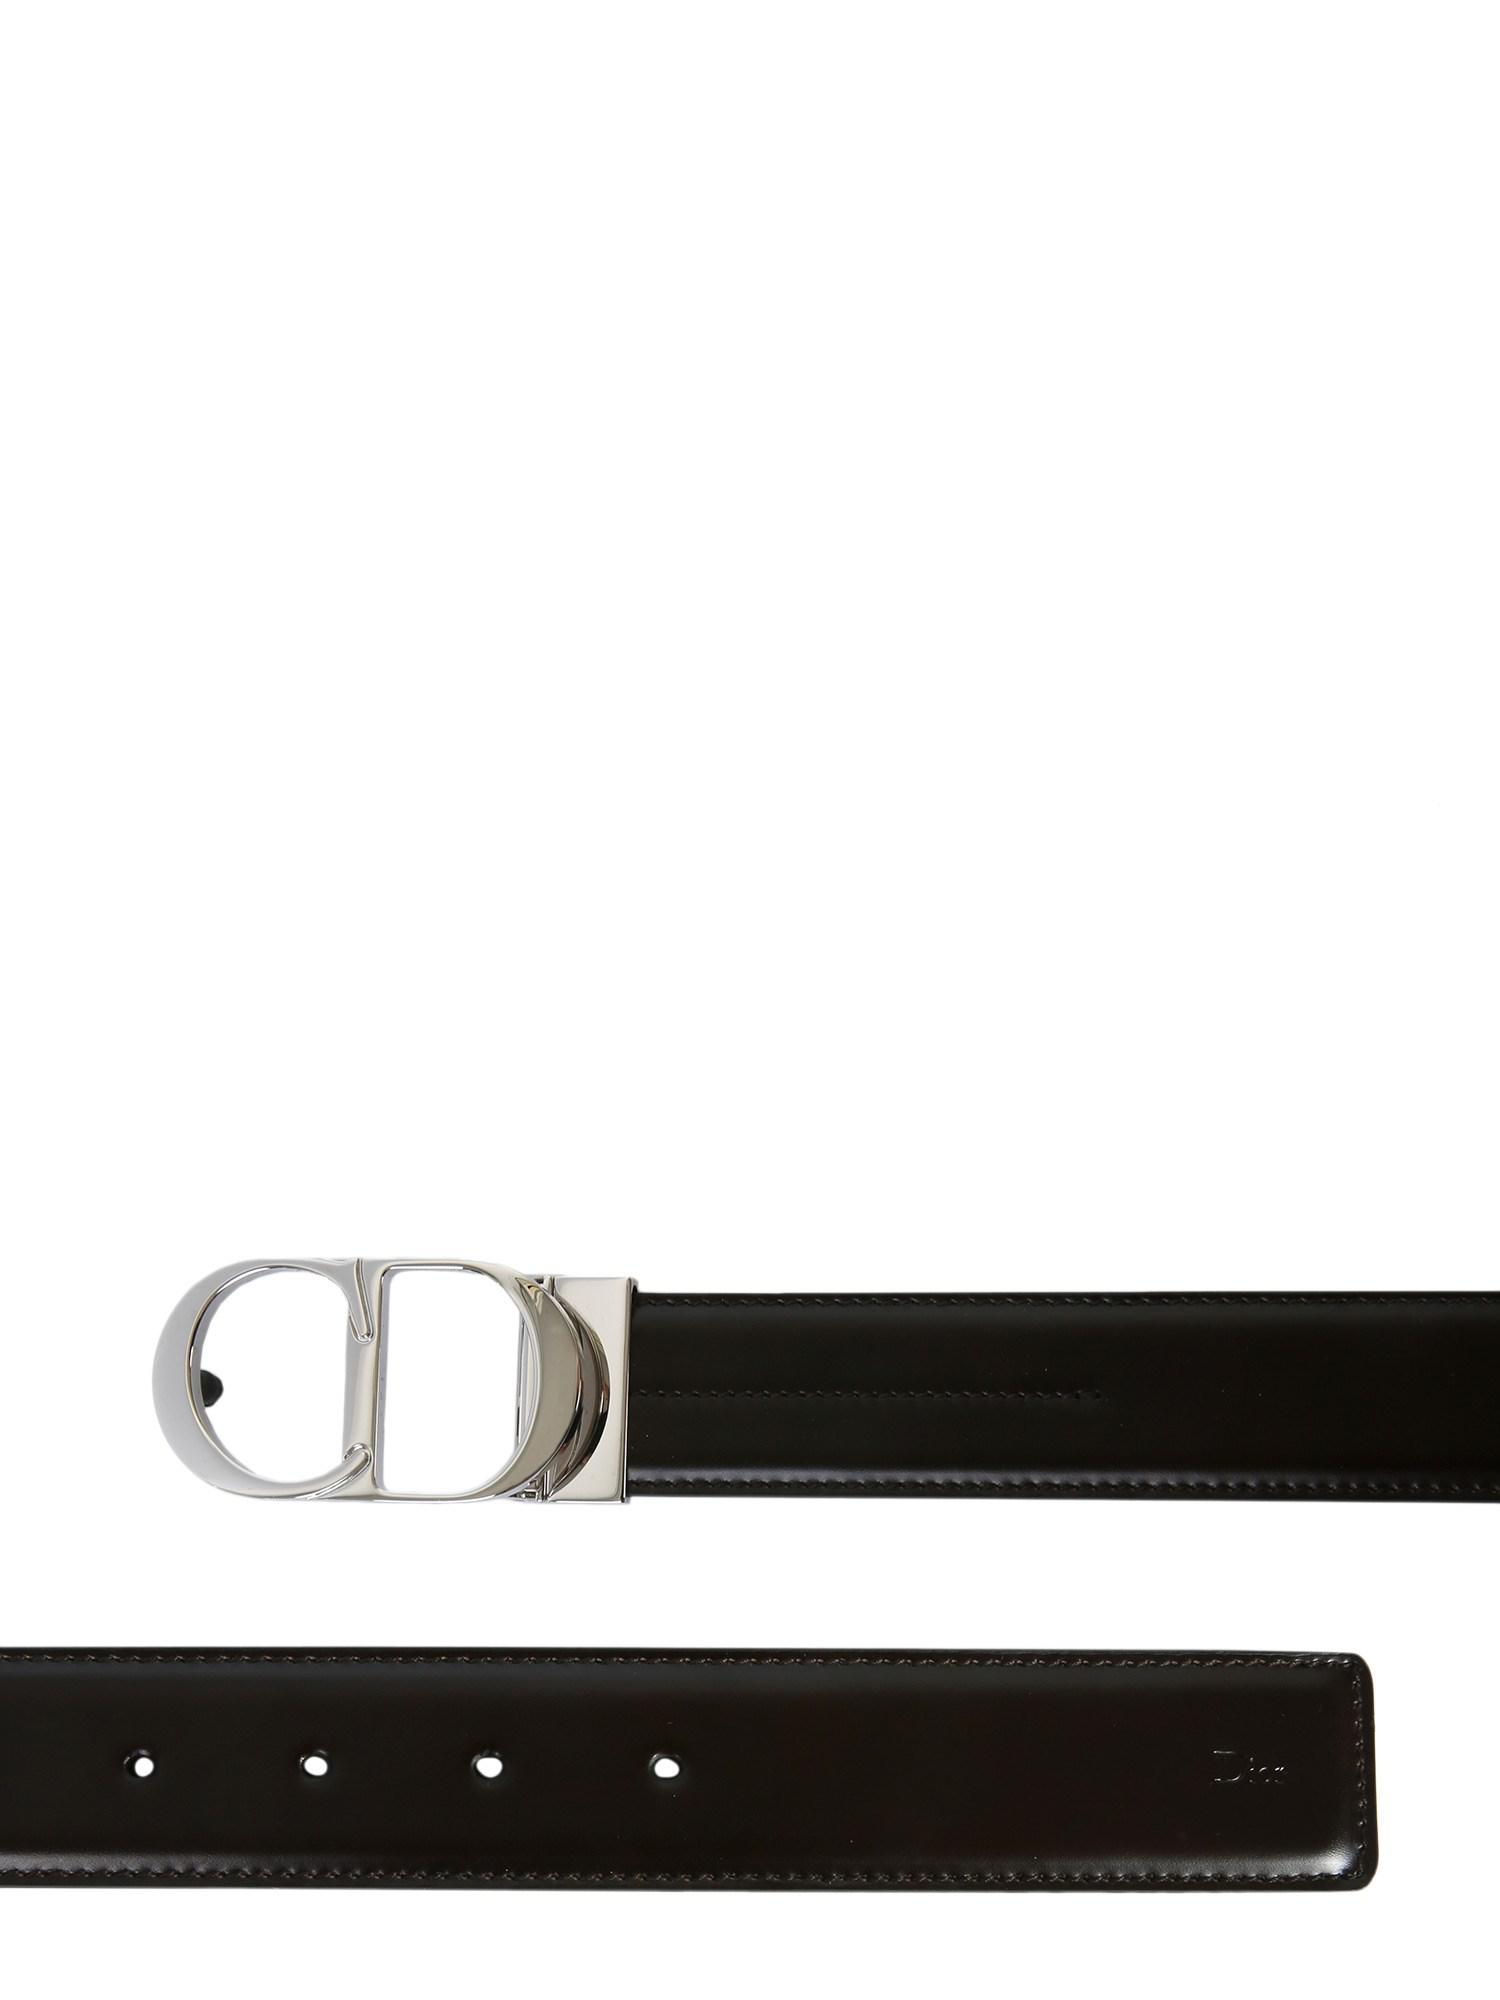 da8bc10f09d46 Dior Homme Belt With Iconic Metal Buckle in Brown for Men - Lyst